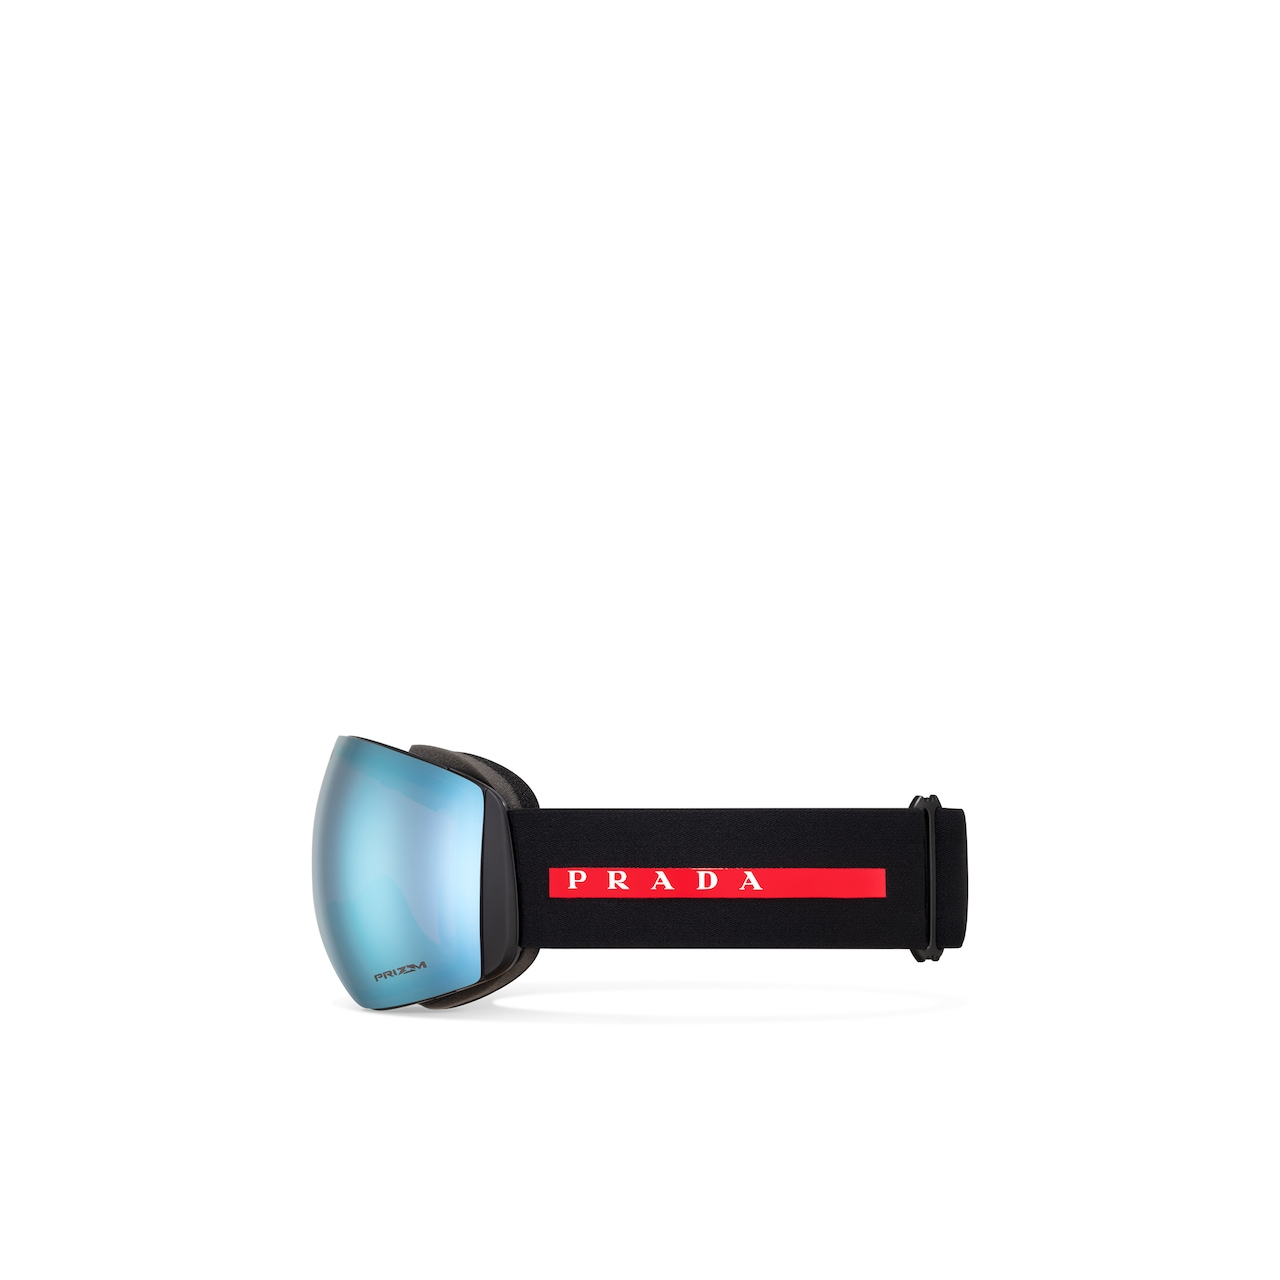 Prada Linea Rossa for Oakley snow goggle 5